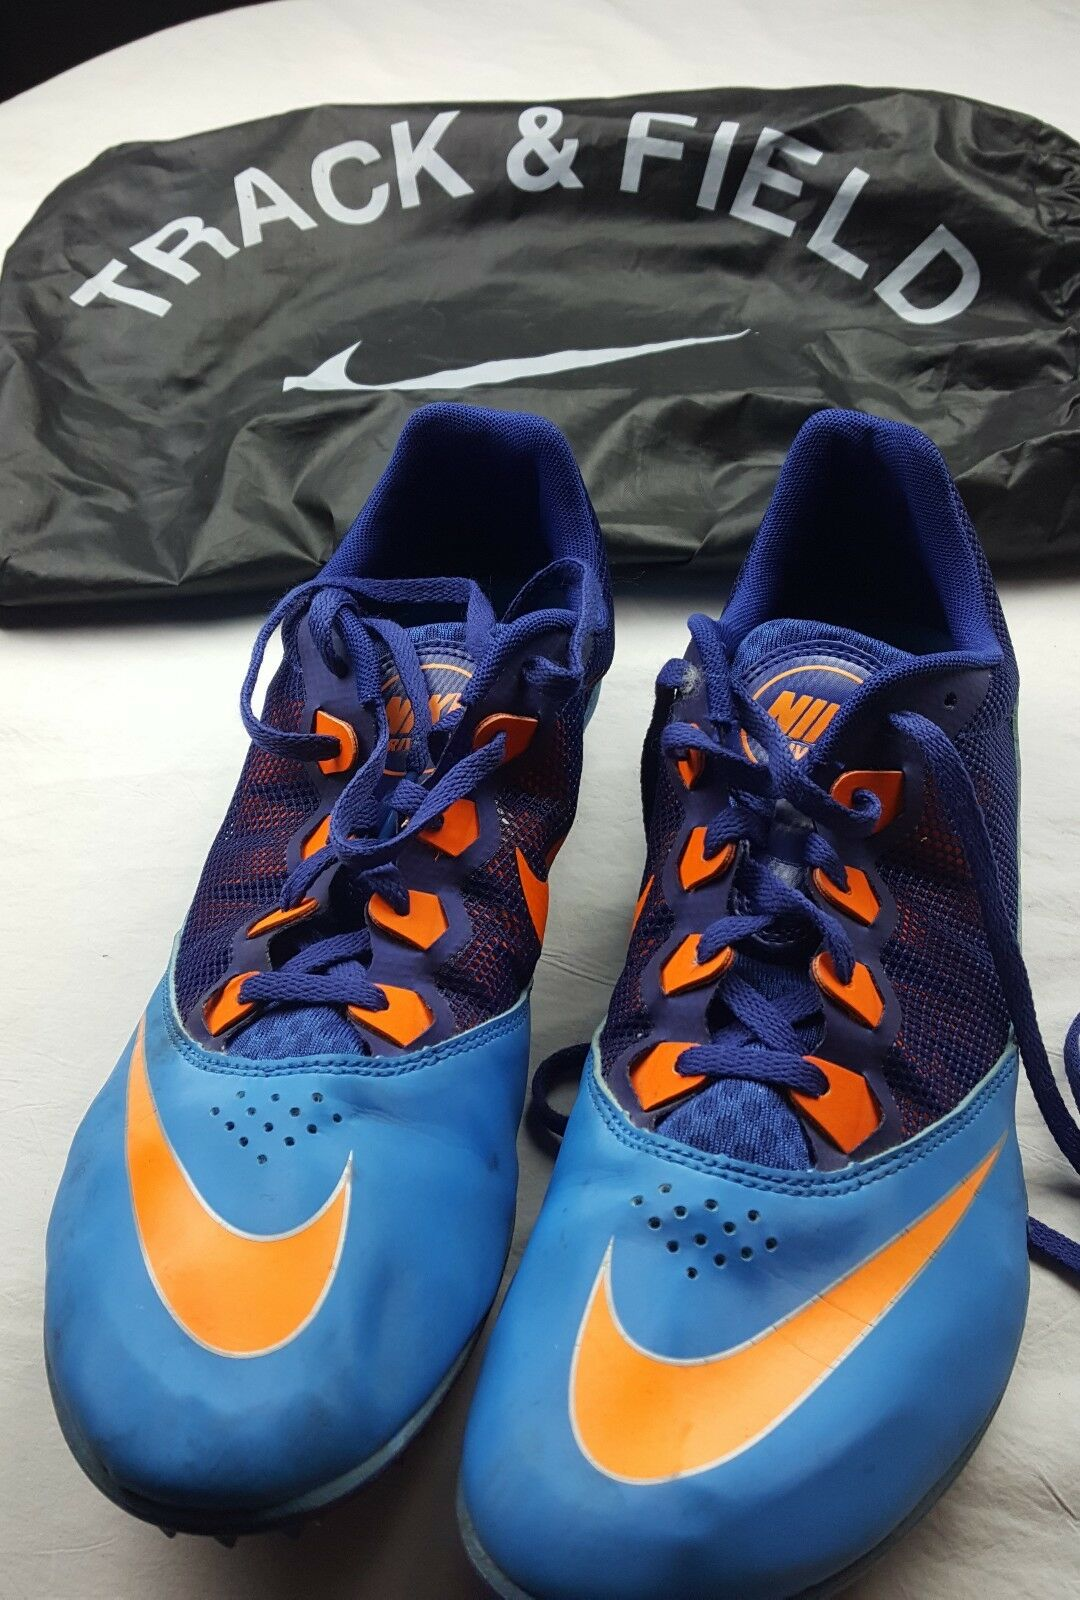 Nike Rival S Racing Sprint Running Track Spikes Shoes Men 12 blue & Orang 616313 Brand discount Seasonal clearance sale